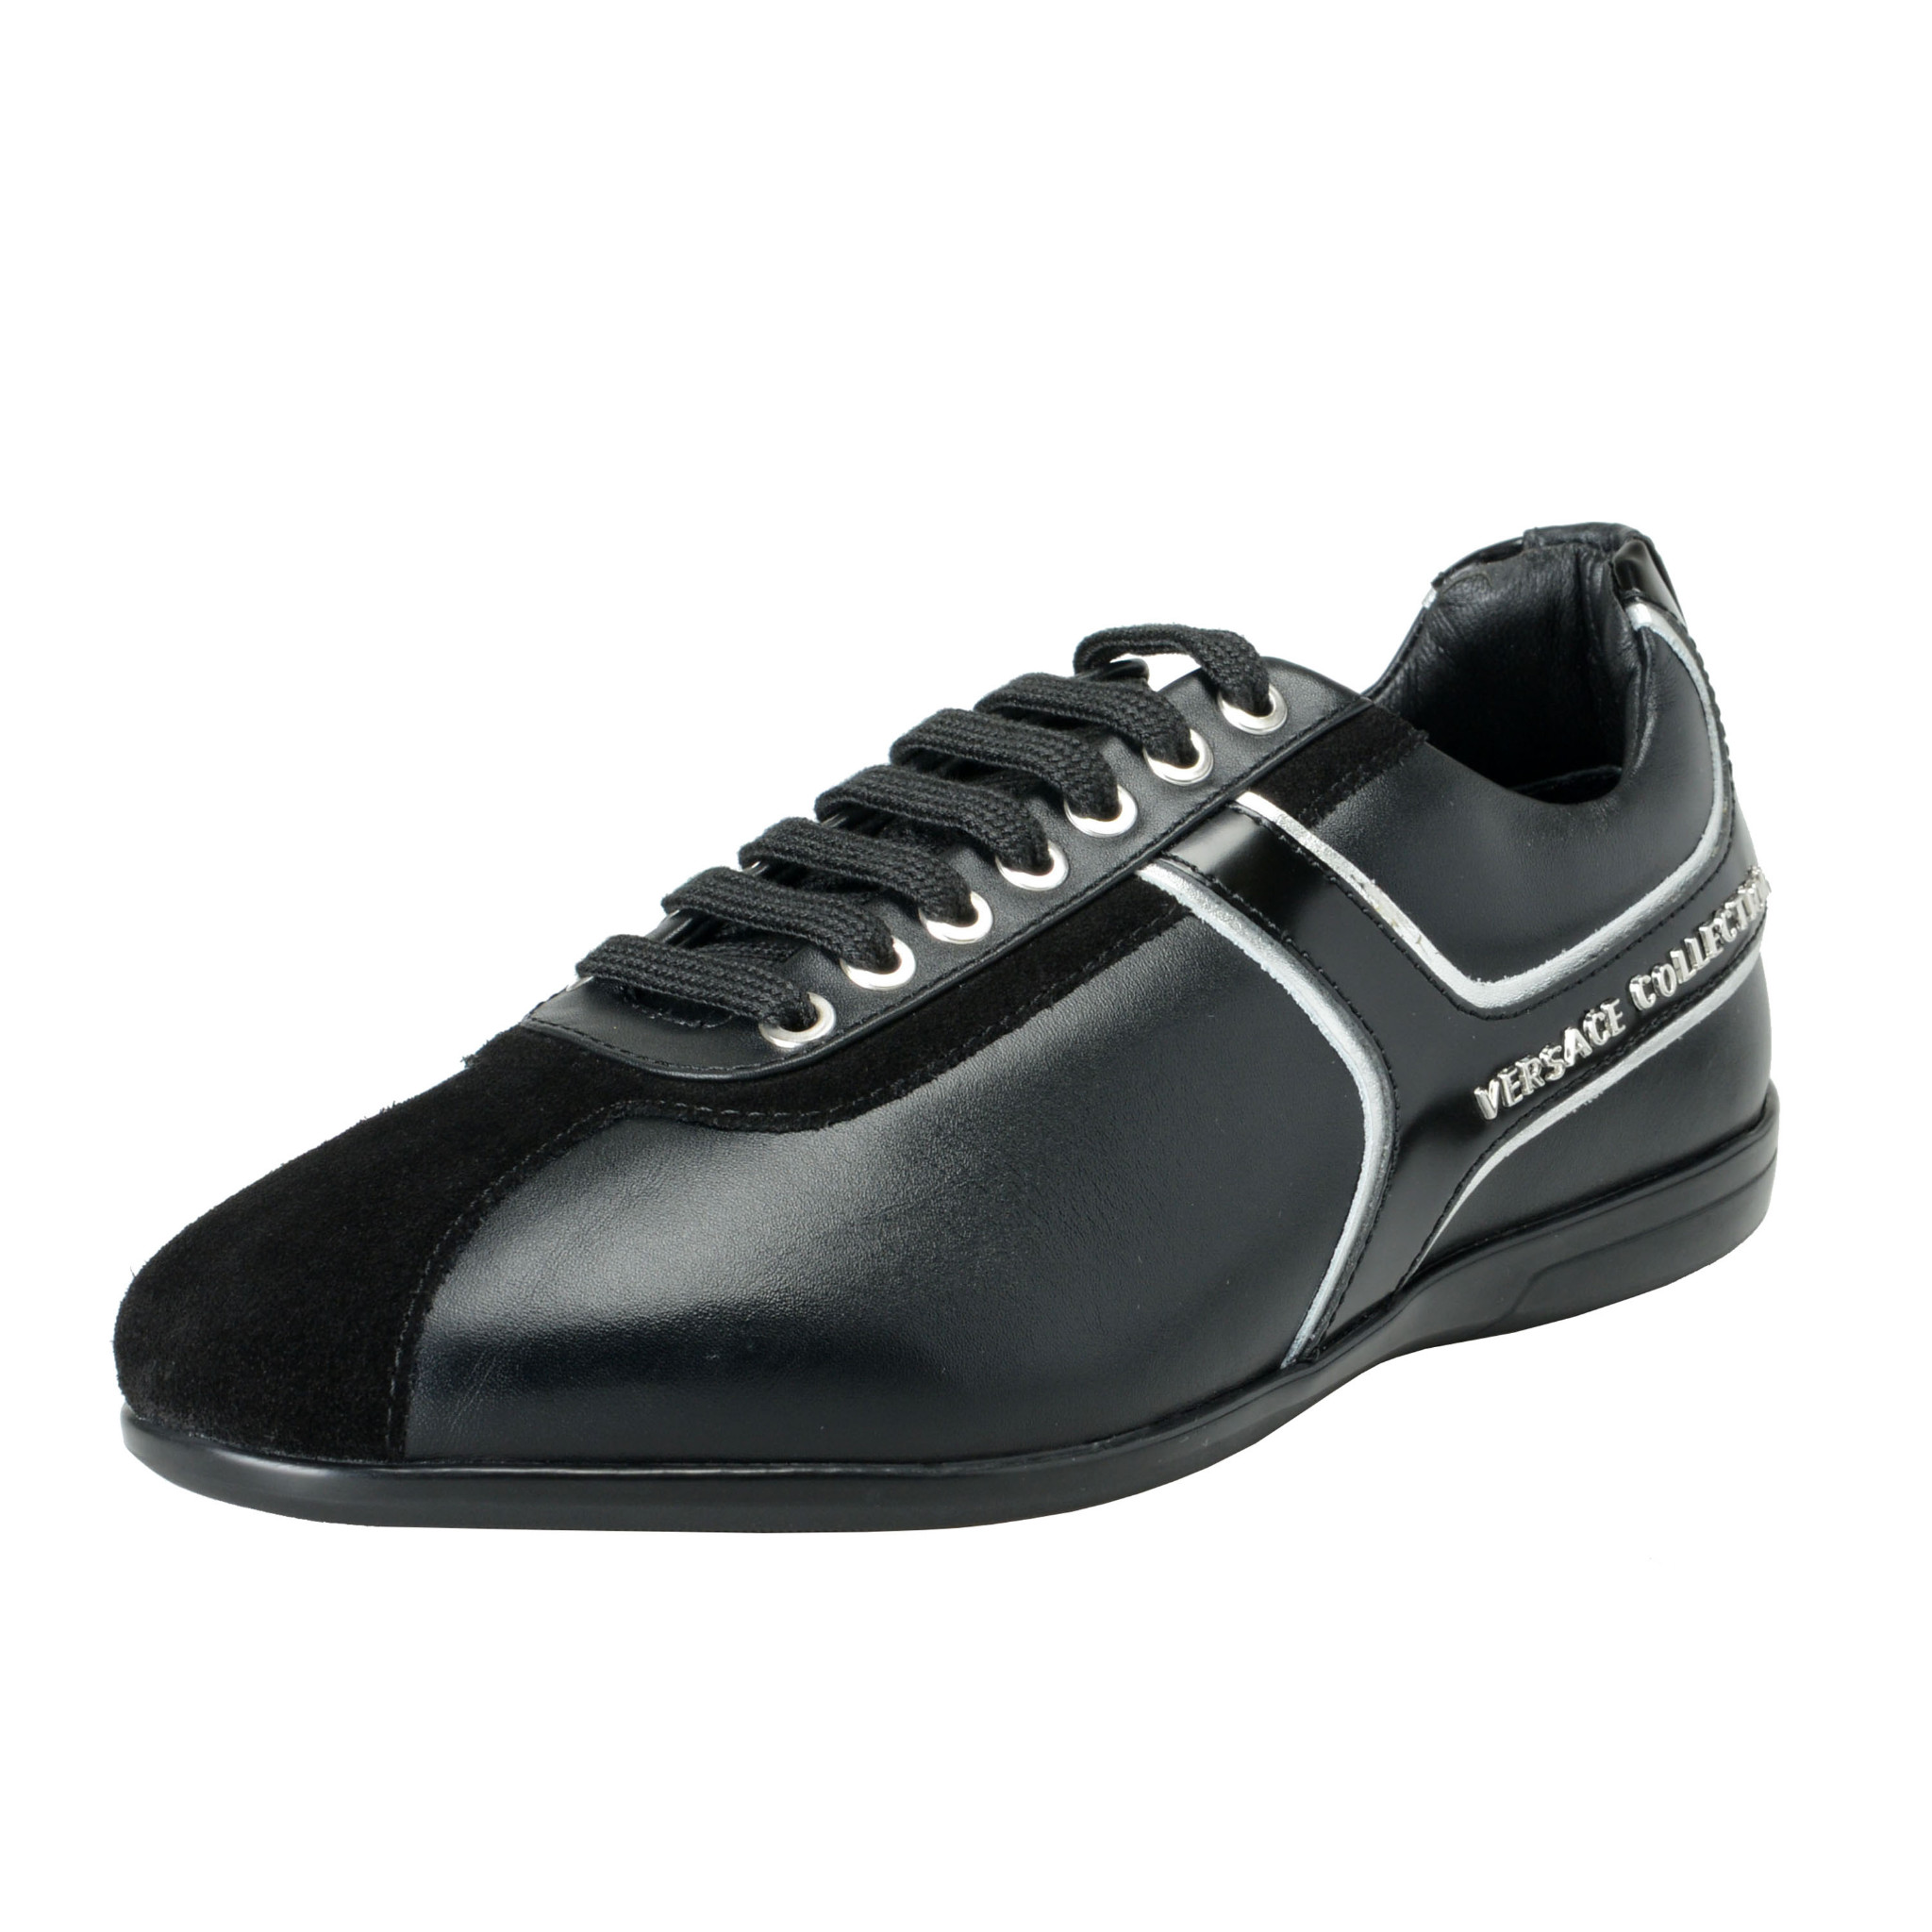 Details about Versace Collection Men's Black Leather Fashion Sneakers Shoes  6 7 8 9 10 11